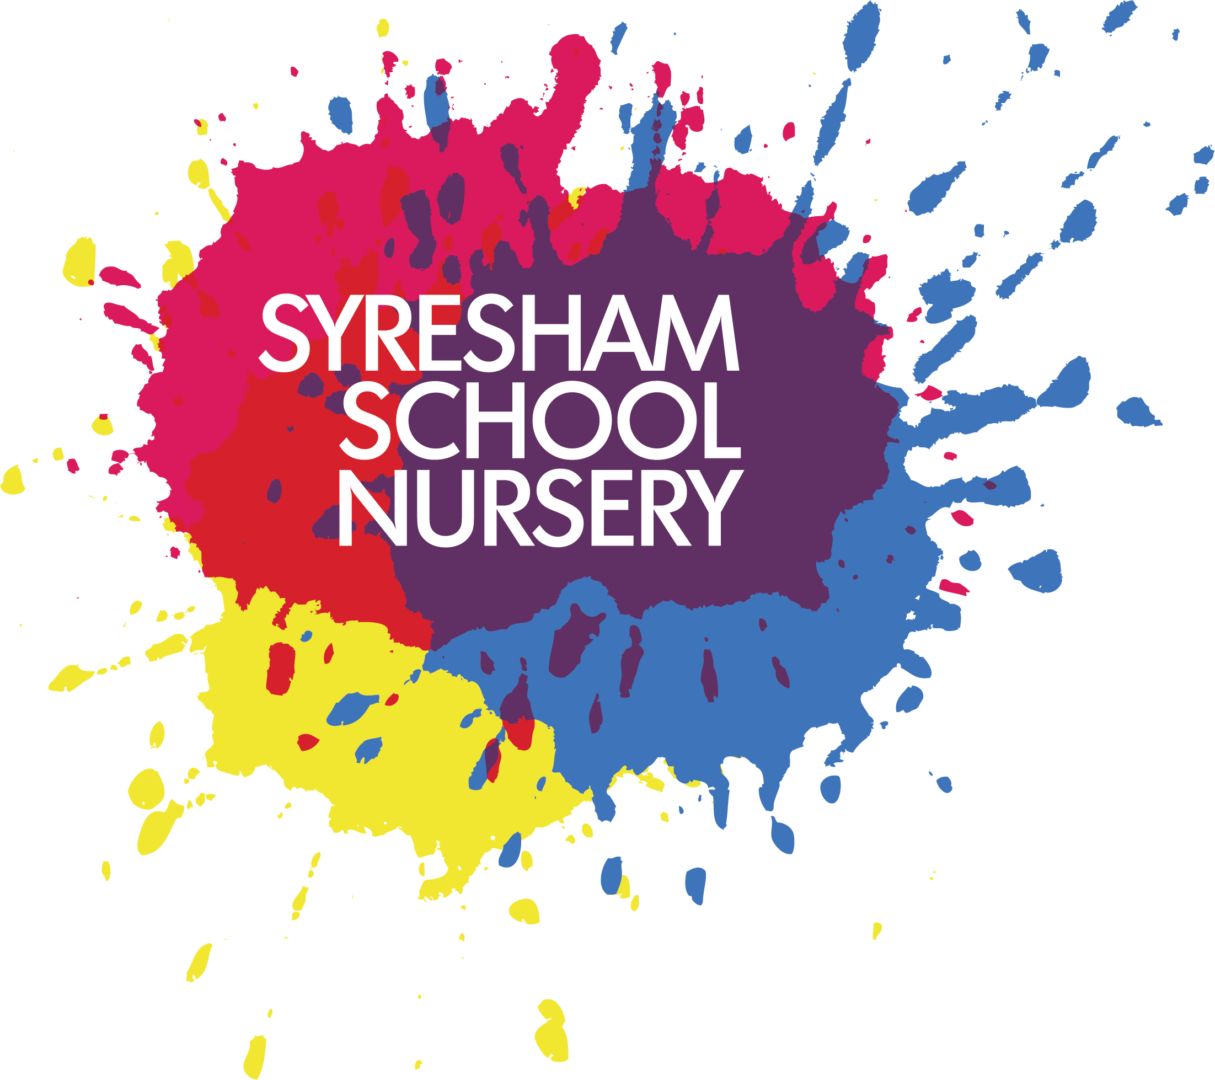 Syresham School Nursery